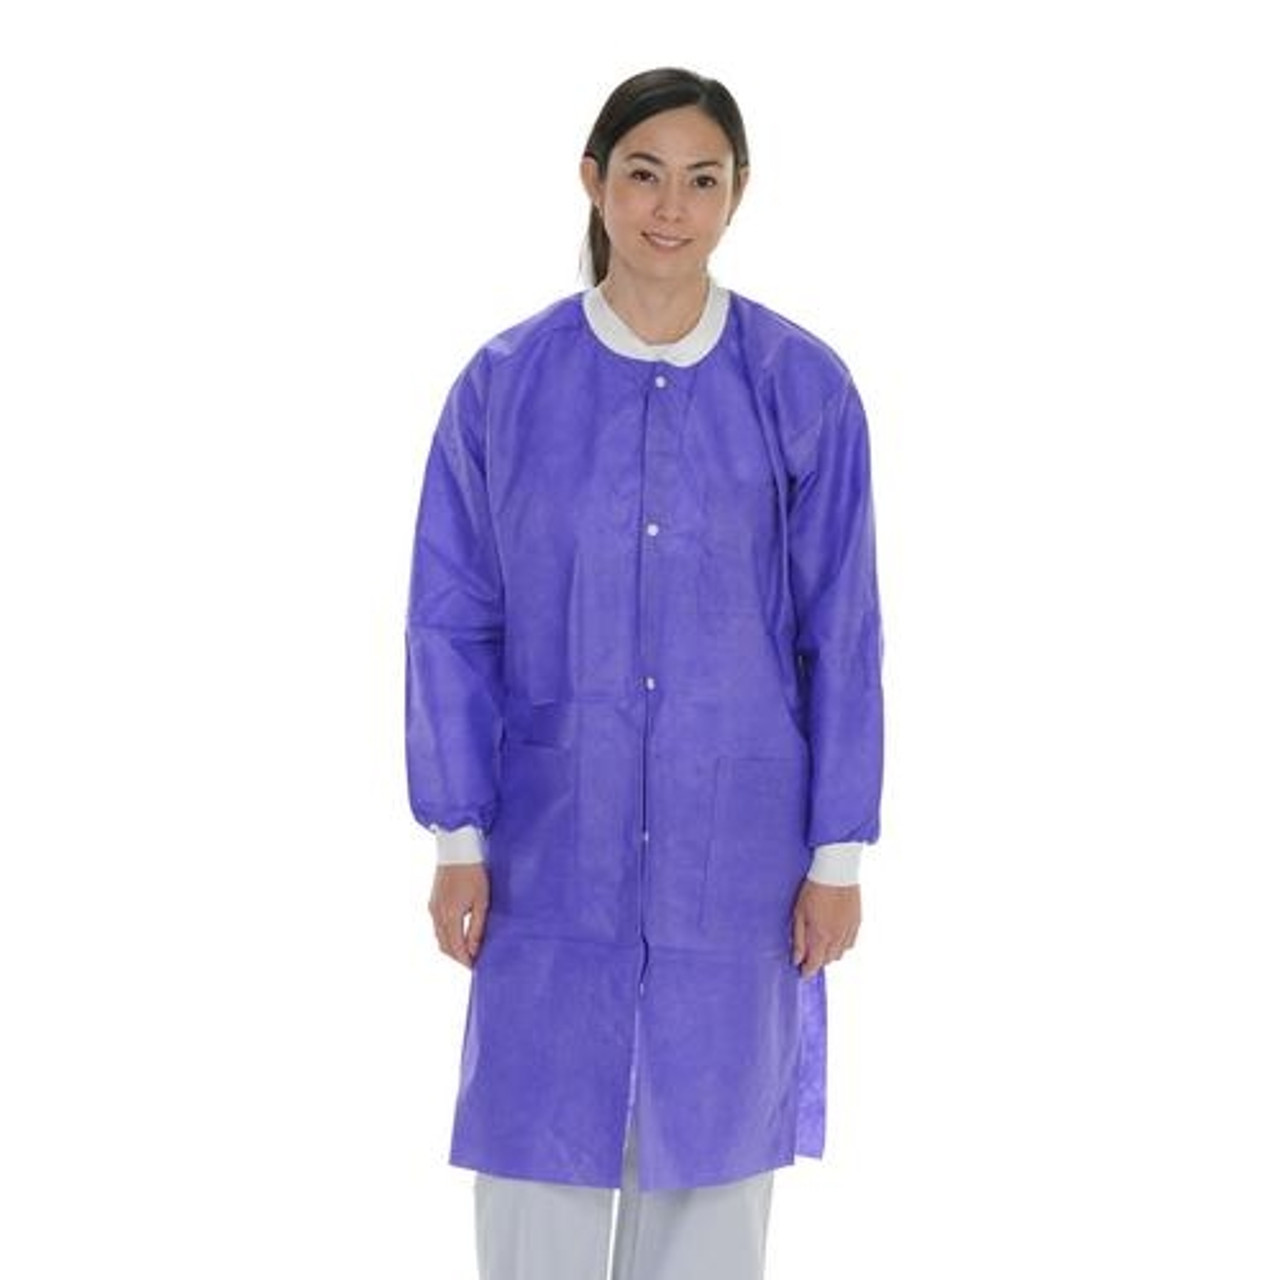 ValuMax Extra-Safe Lab Coat Knee Legnth SMS Violet Purple